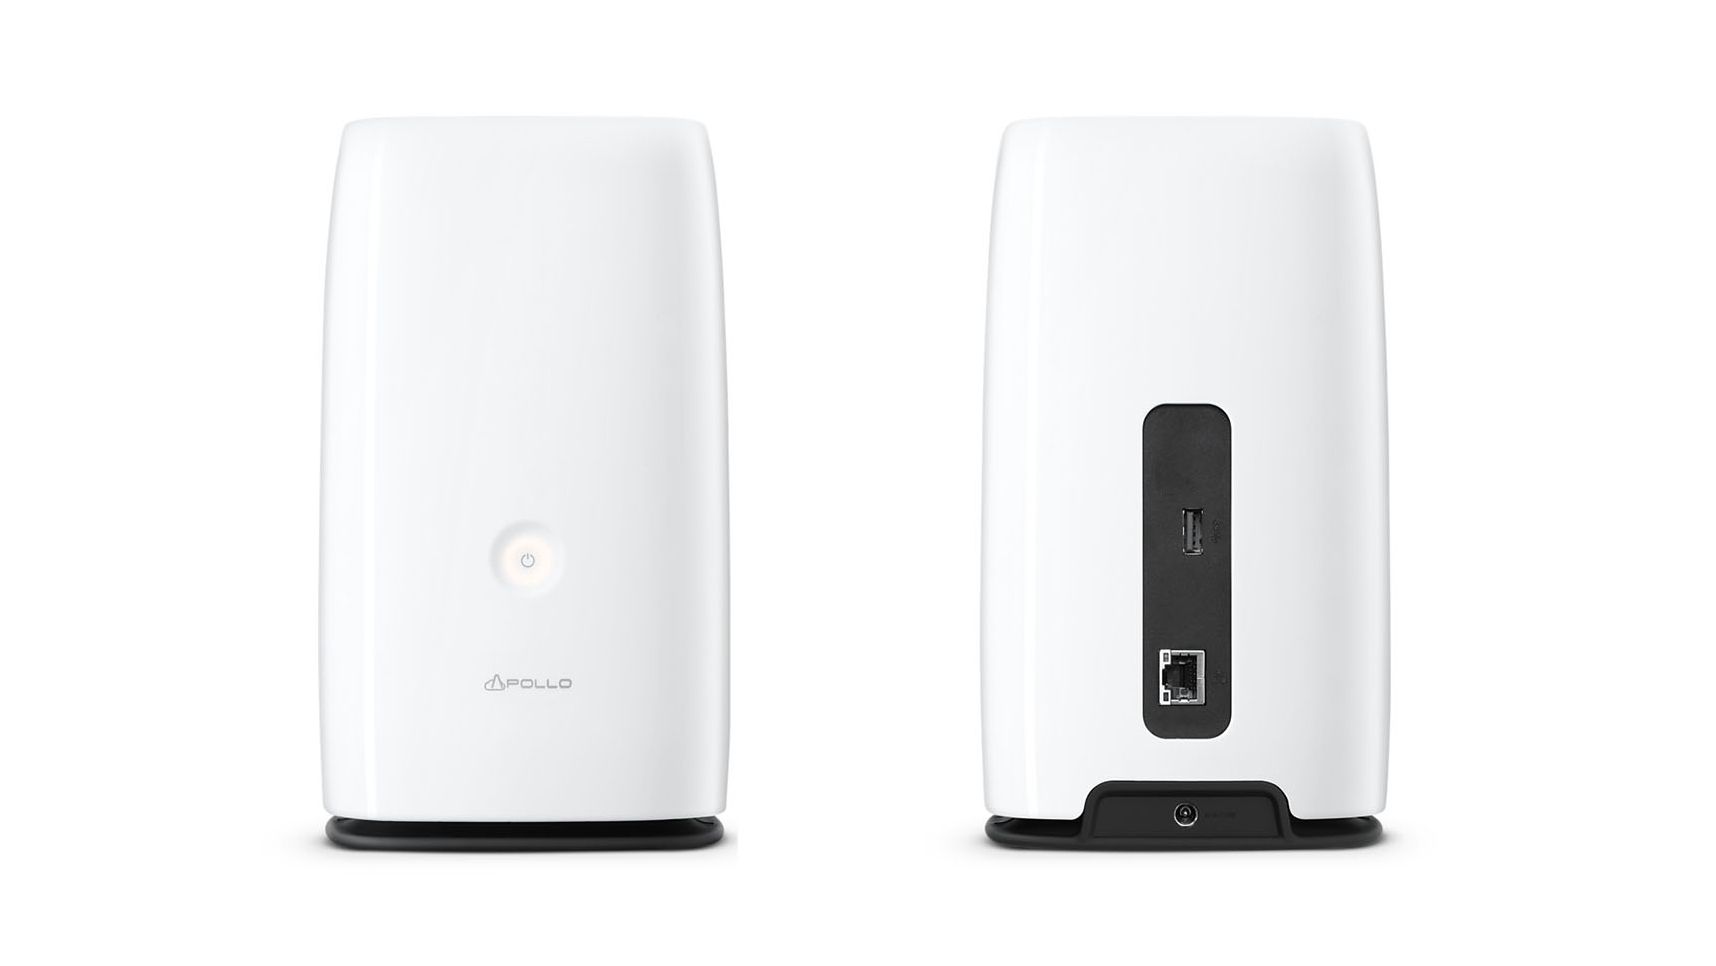 promise apollo cloud 2 duo 8tb review oddlyshaped network attached storage for the modern age